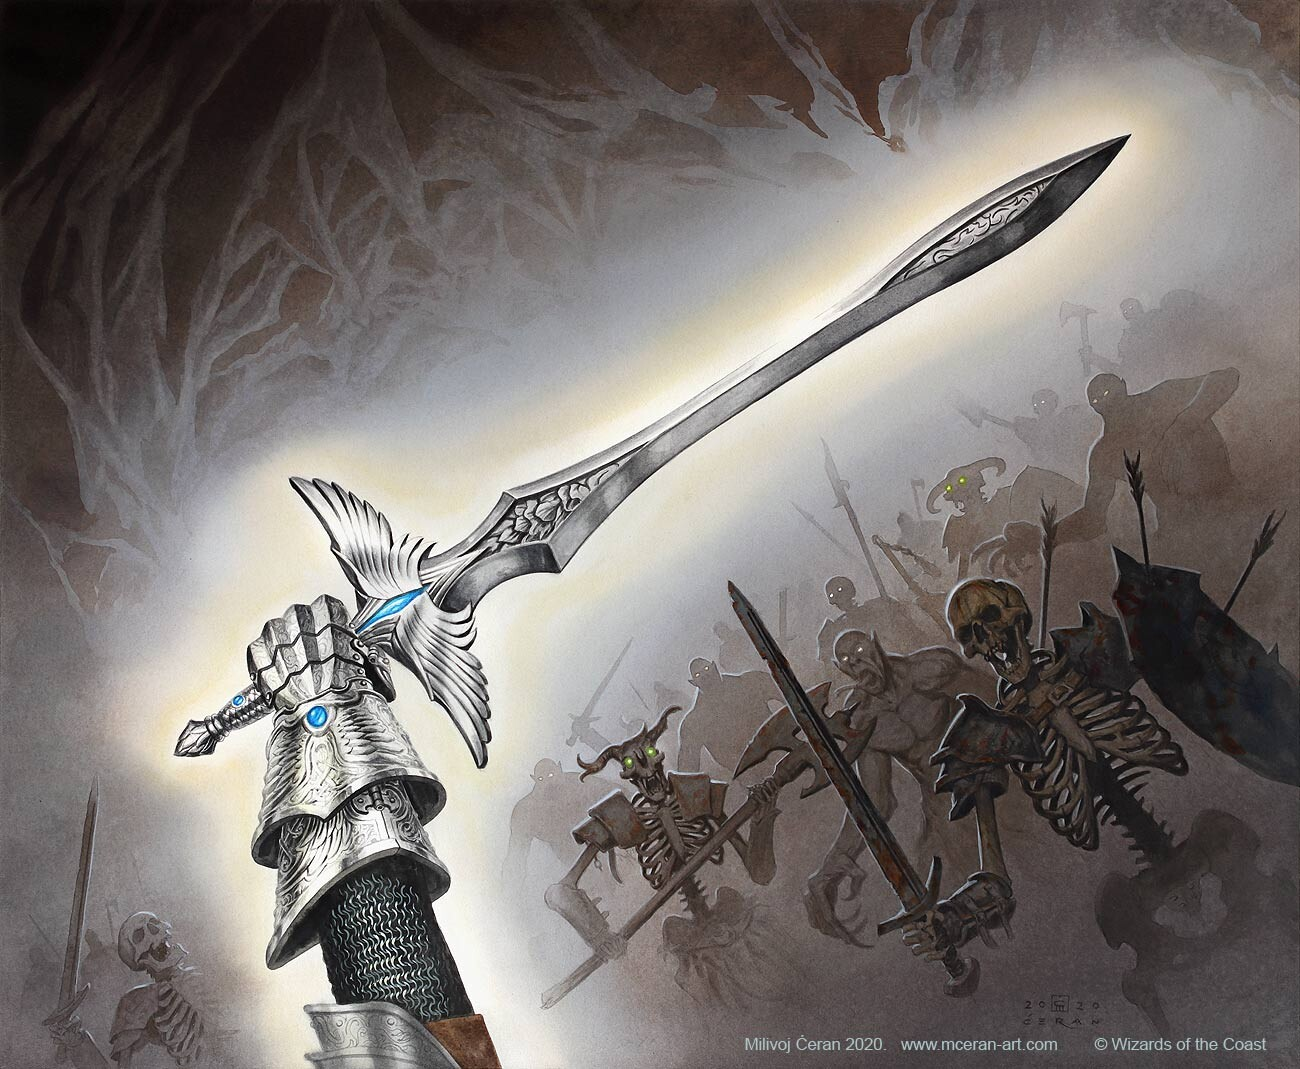 """- """"Holy Avenger"""" Milivoj Ćeran 2020. - 62,5 x 76 cm (24,6 x 30 inches) - acrylic on paper (Fabriano 5, 300 gsm) - © Wizards of the Coast - AD Andrew Vallas - """"Adventures in the Forgotten Realms Commander"""" set - original artwork sold!"""